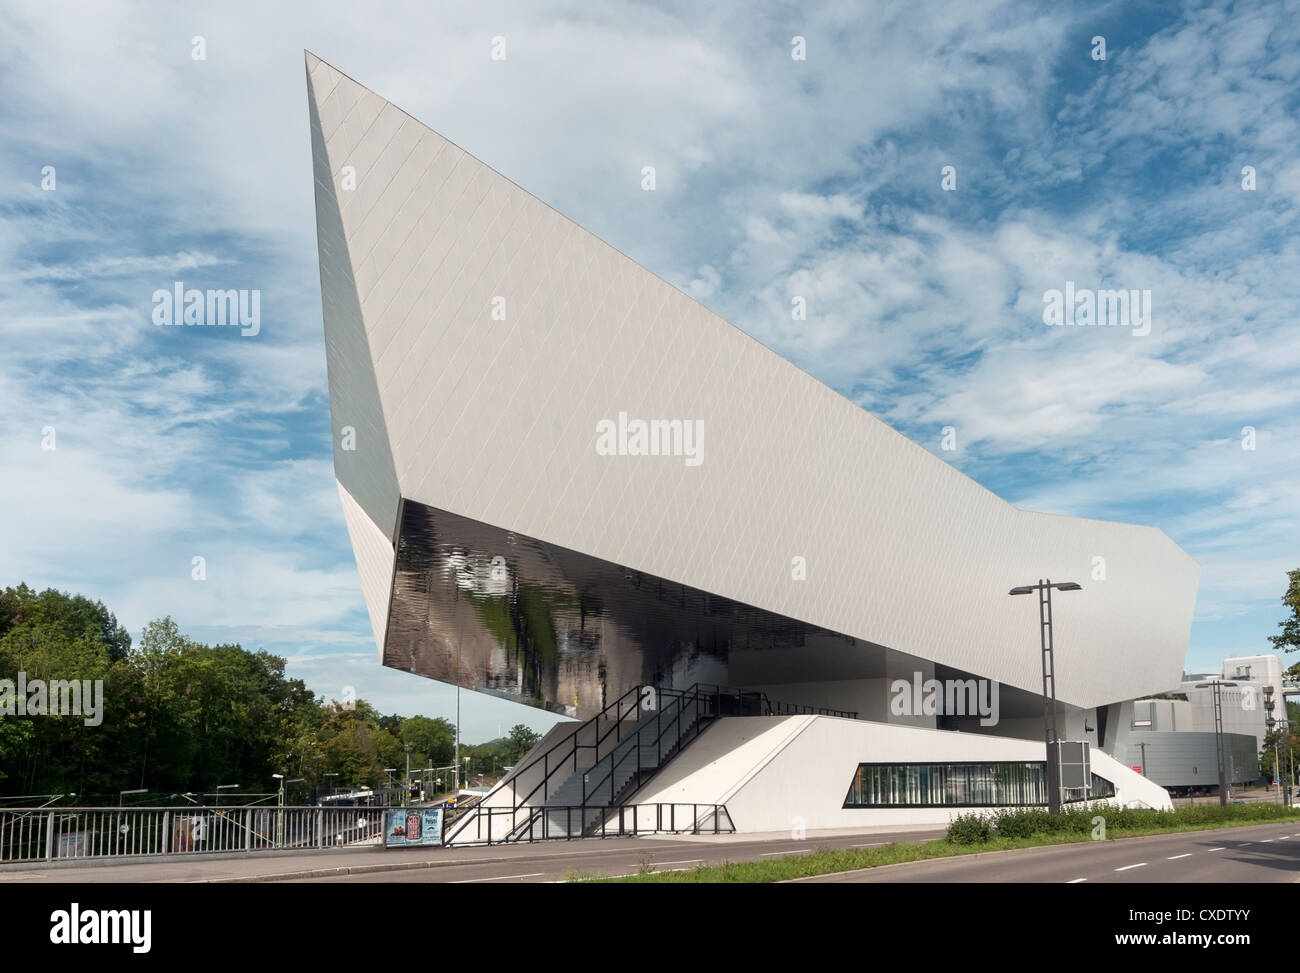 porsche museum building designed by delugan meissl stuttgart stock photo royalty free image. Black Bedroom Furniture Sets. Home Design Ideas